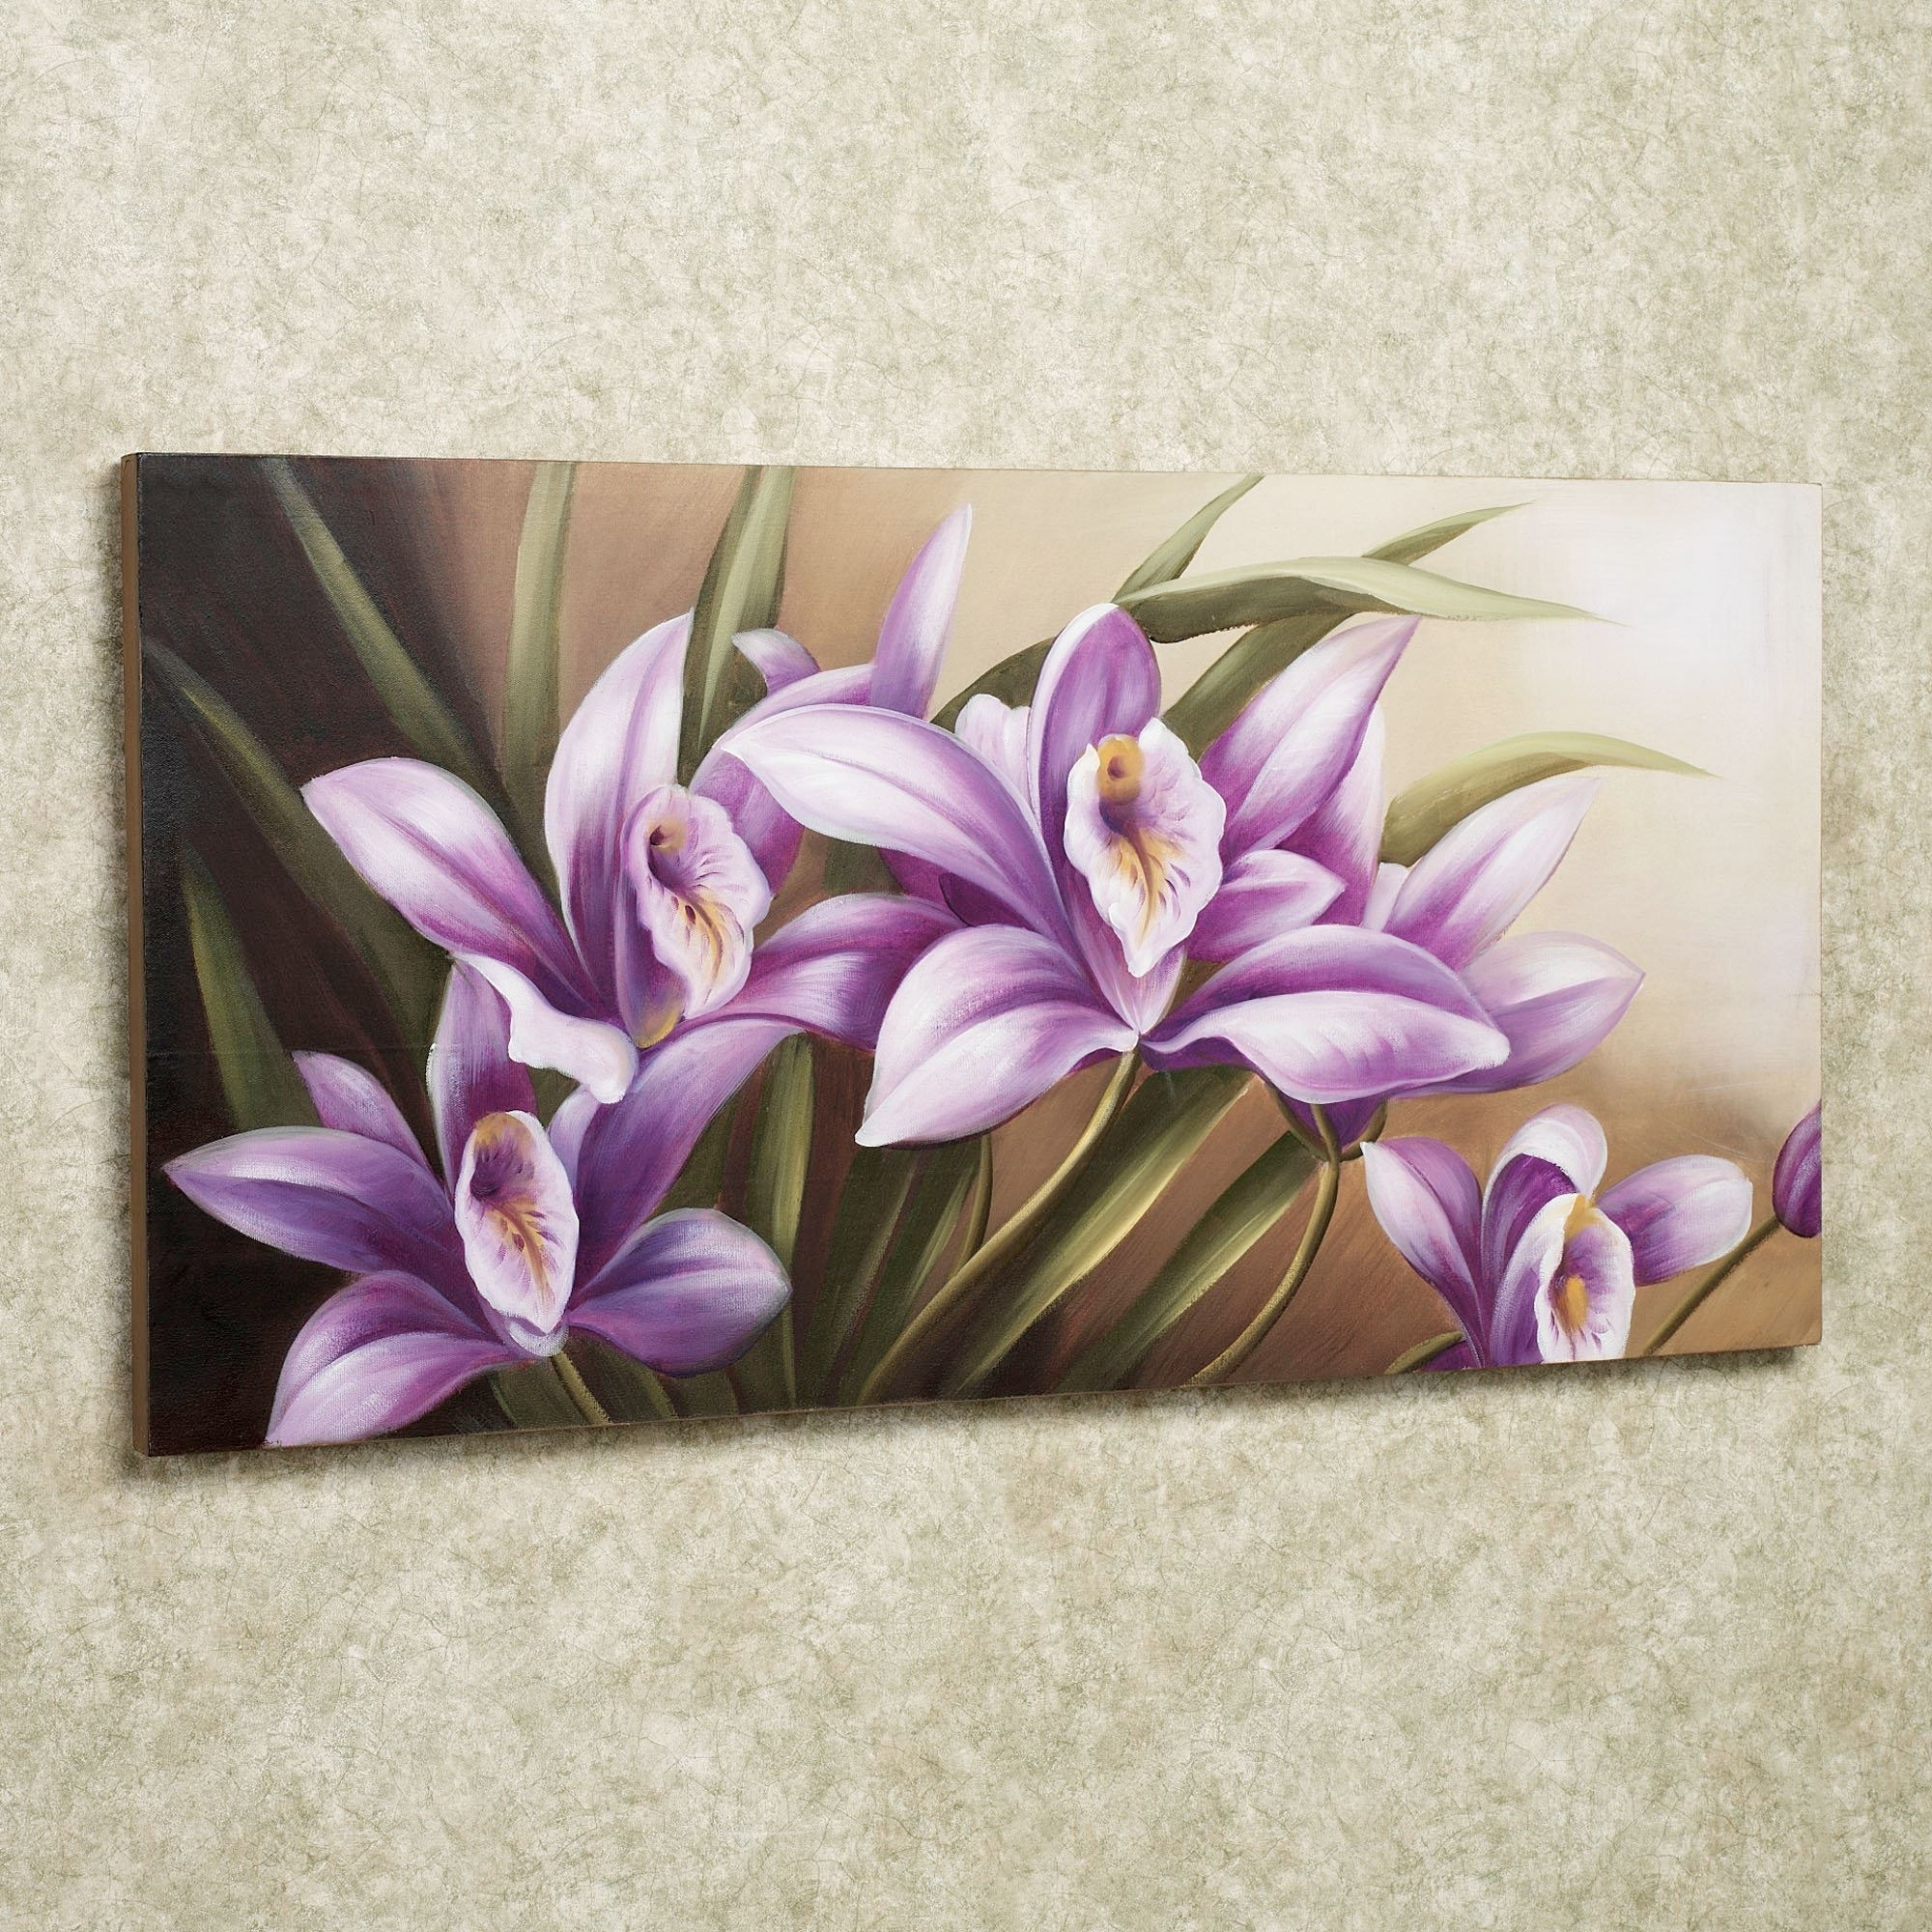 Wild Orchid Handpainted Floral Canvas Wall Art Regarding Most Popular Orchid Canvas Wall Art (Gallery 4 of 15)